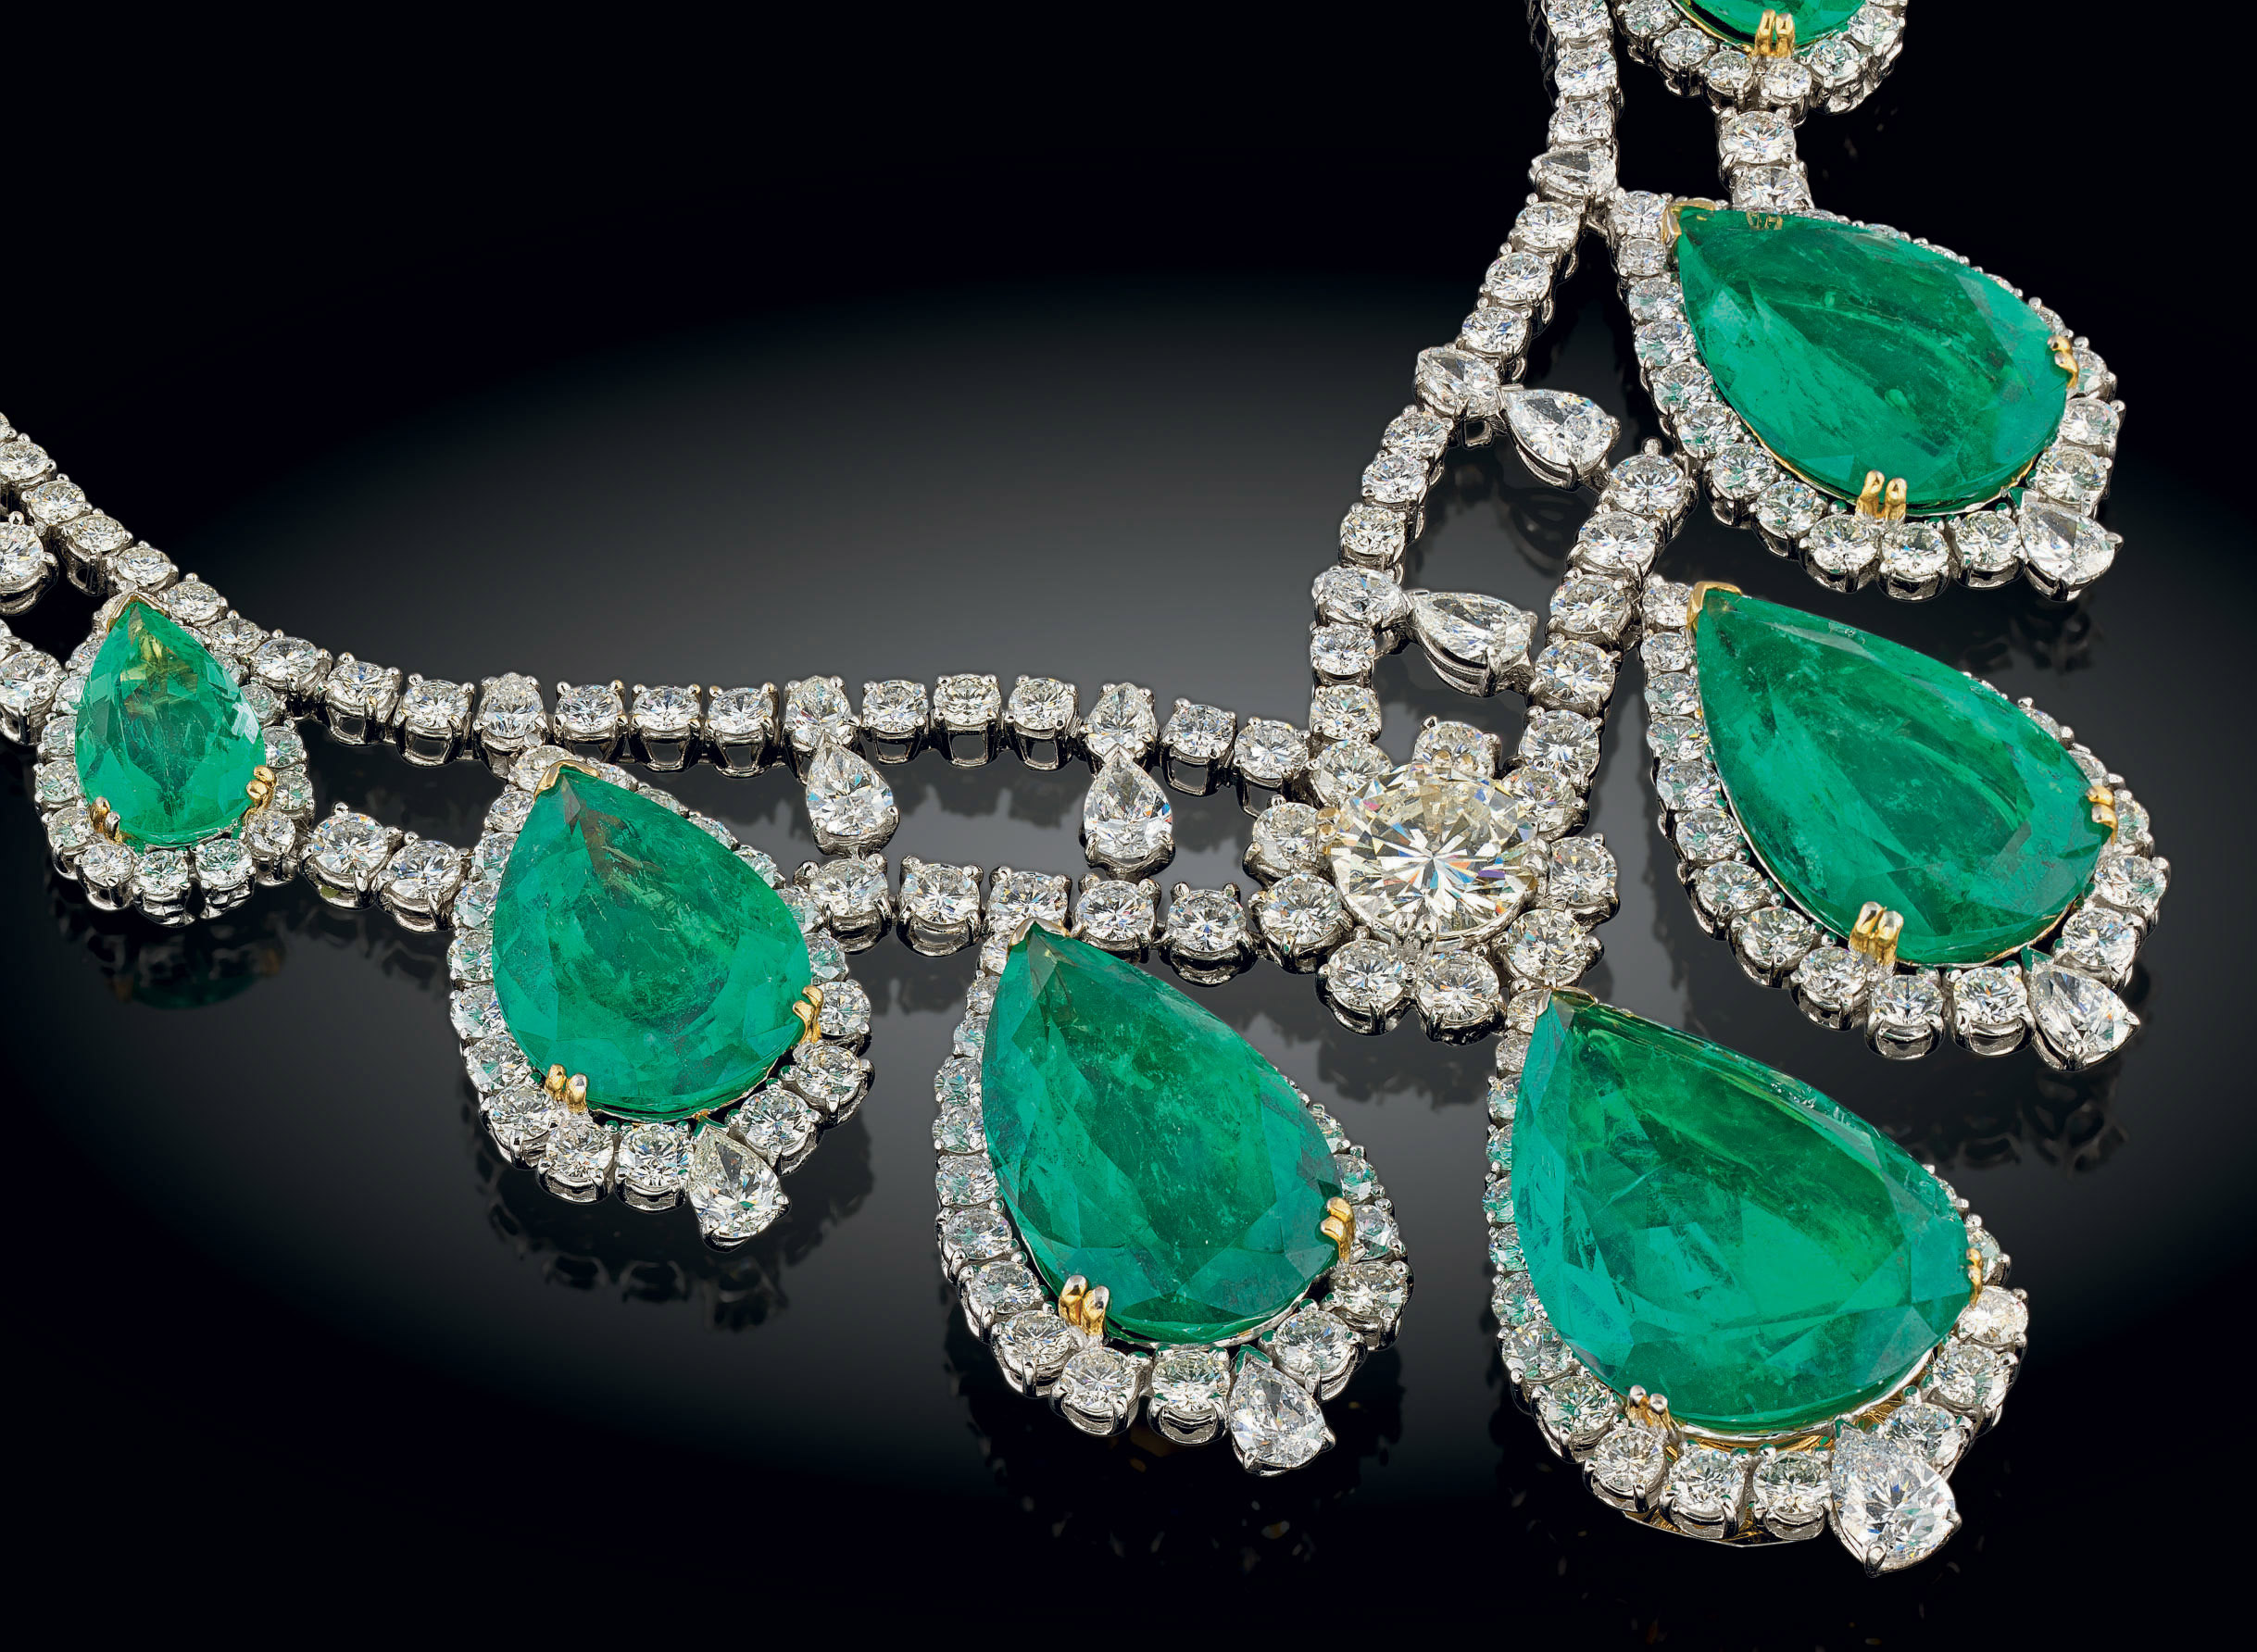 A MAGNIFICENT EMERALD AND DIAMOND NECKLACE, BY JAHAN